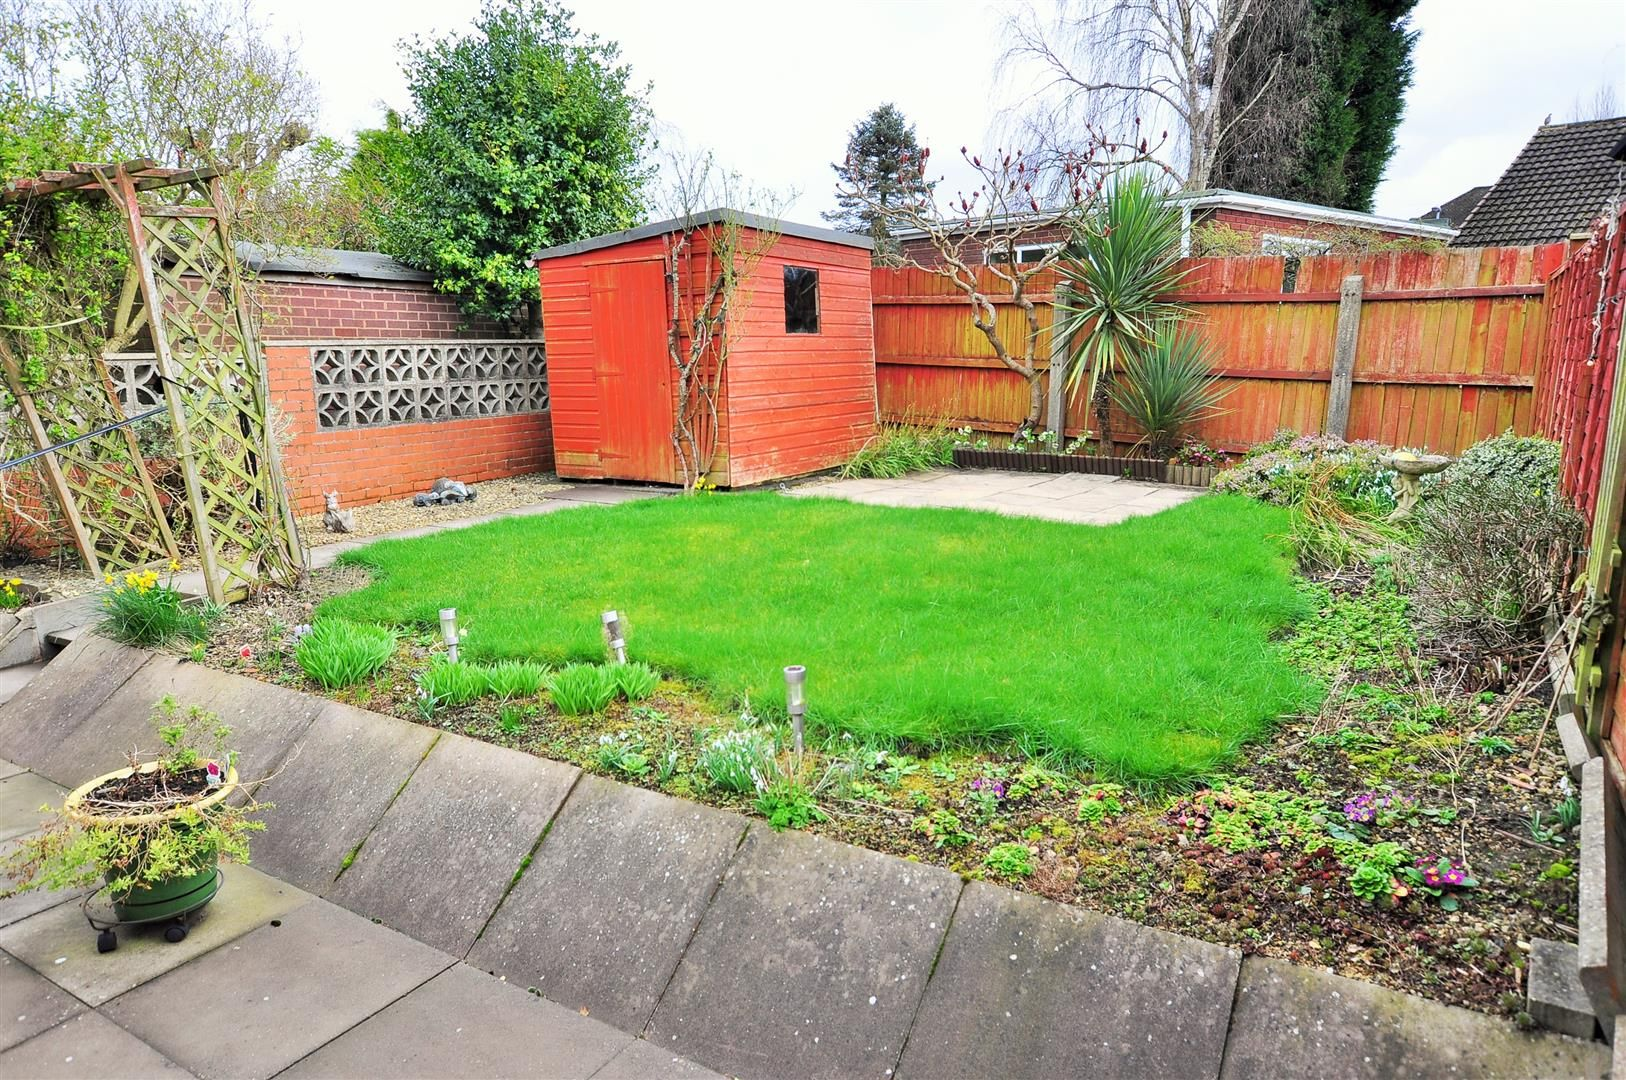 2 bed detached-bungalow for sale in Hurst Green  - Property Image 10